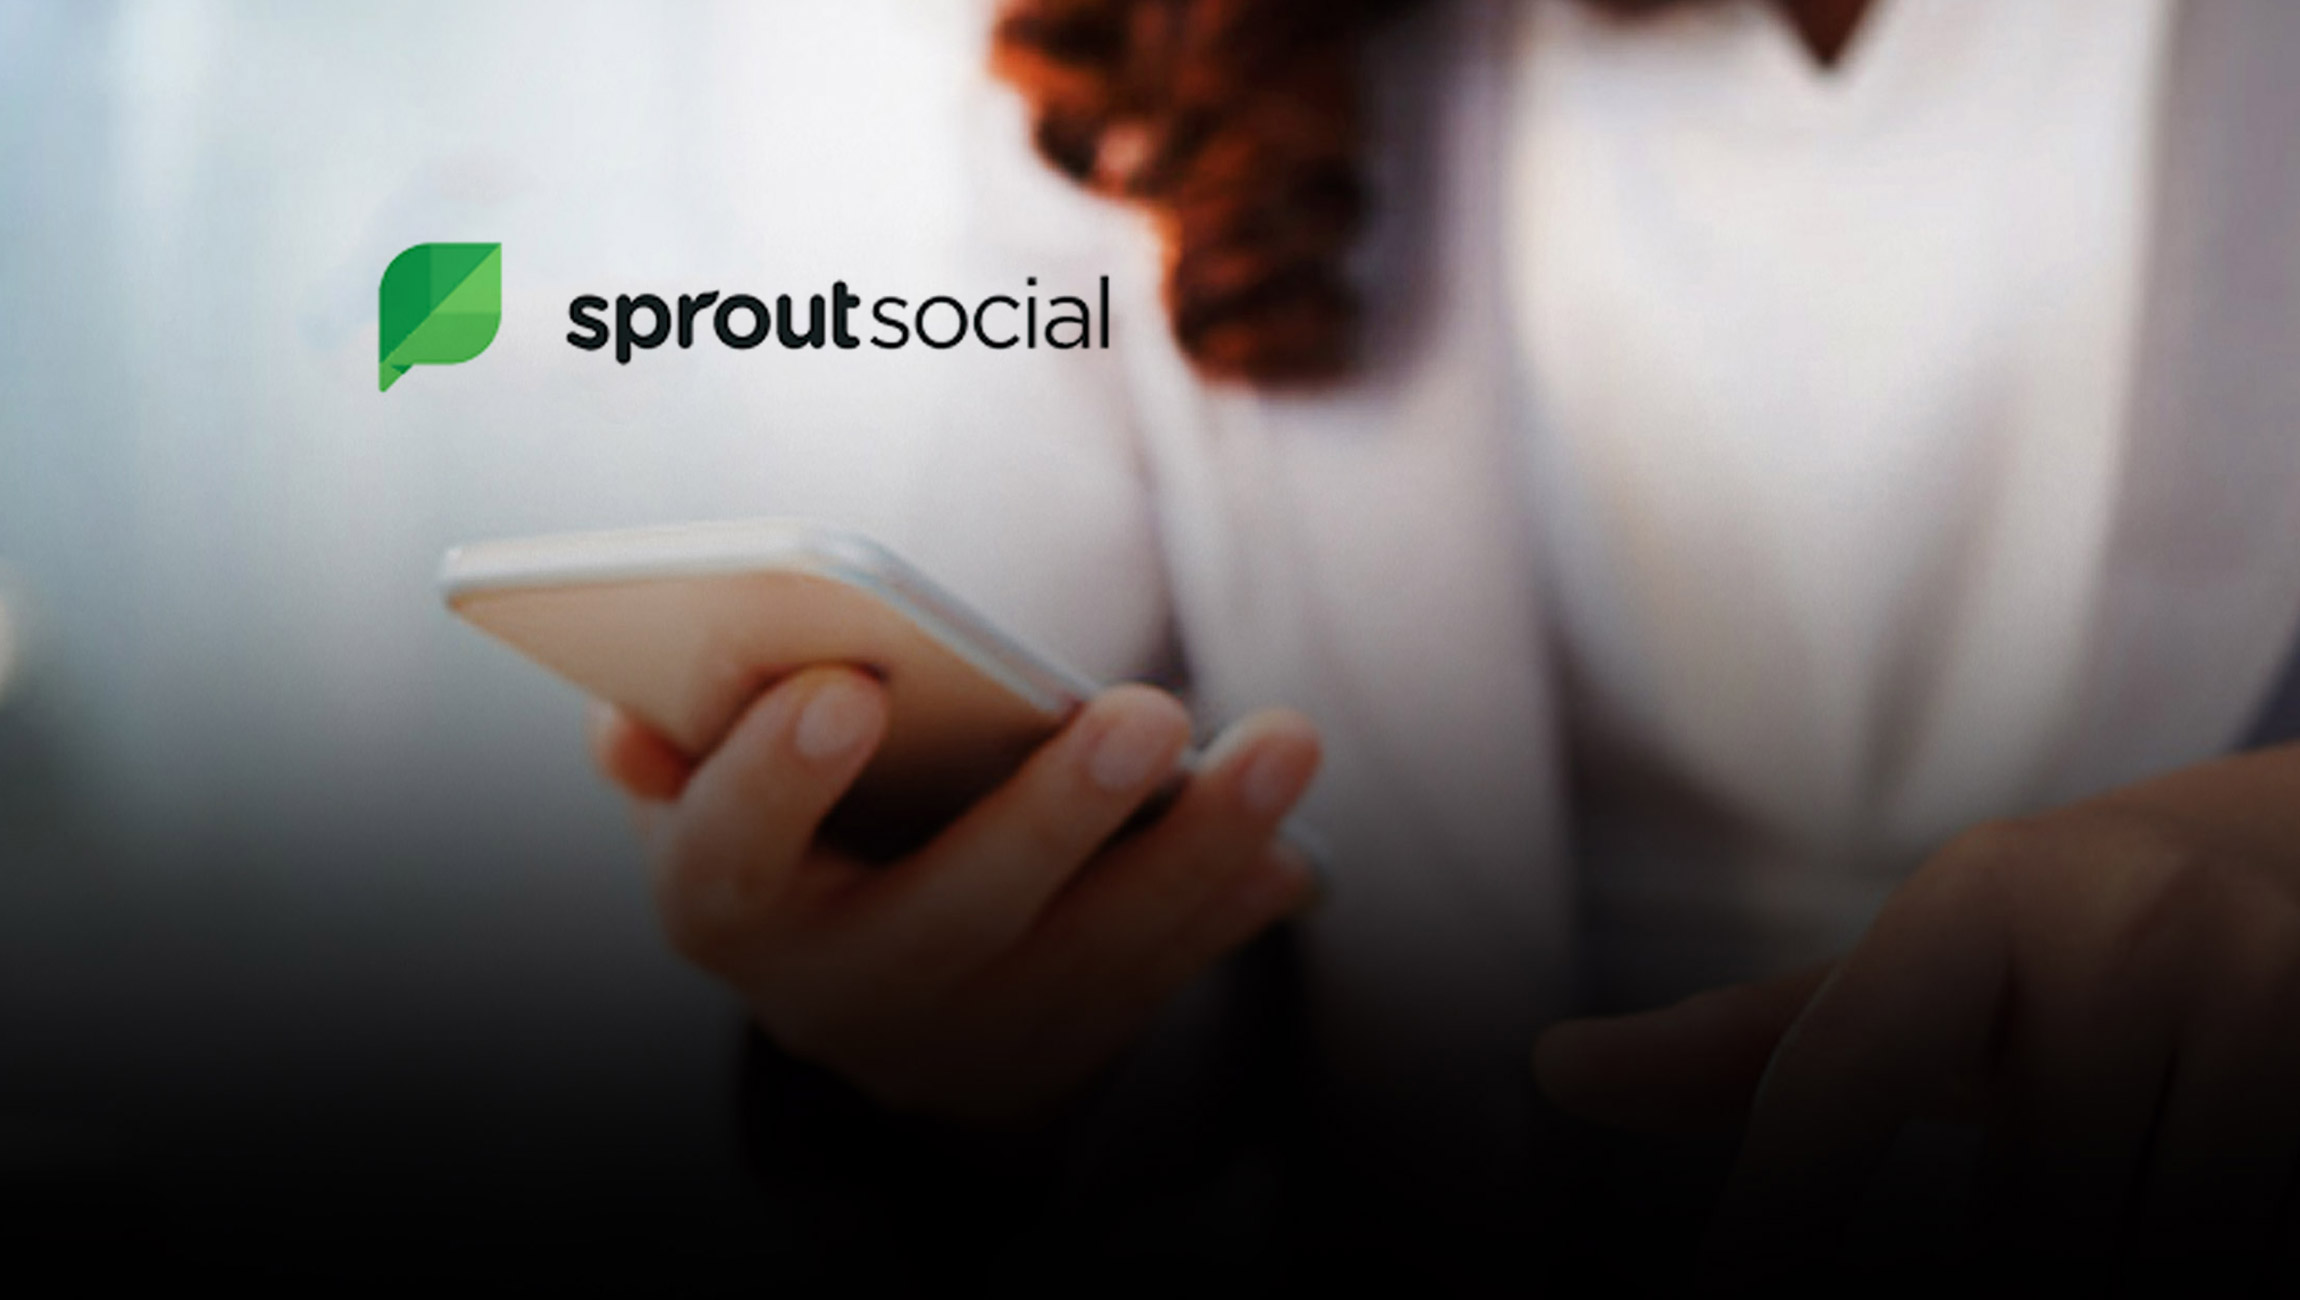 New Research Shows Social Media Has Created a More Competitive Landscape for Brands, but Is Simultaneously Key for Staying Ahead in Their Industry